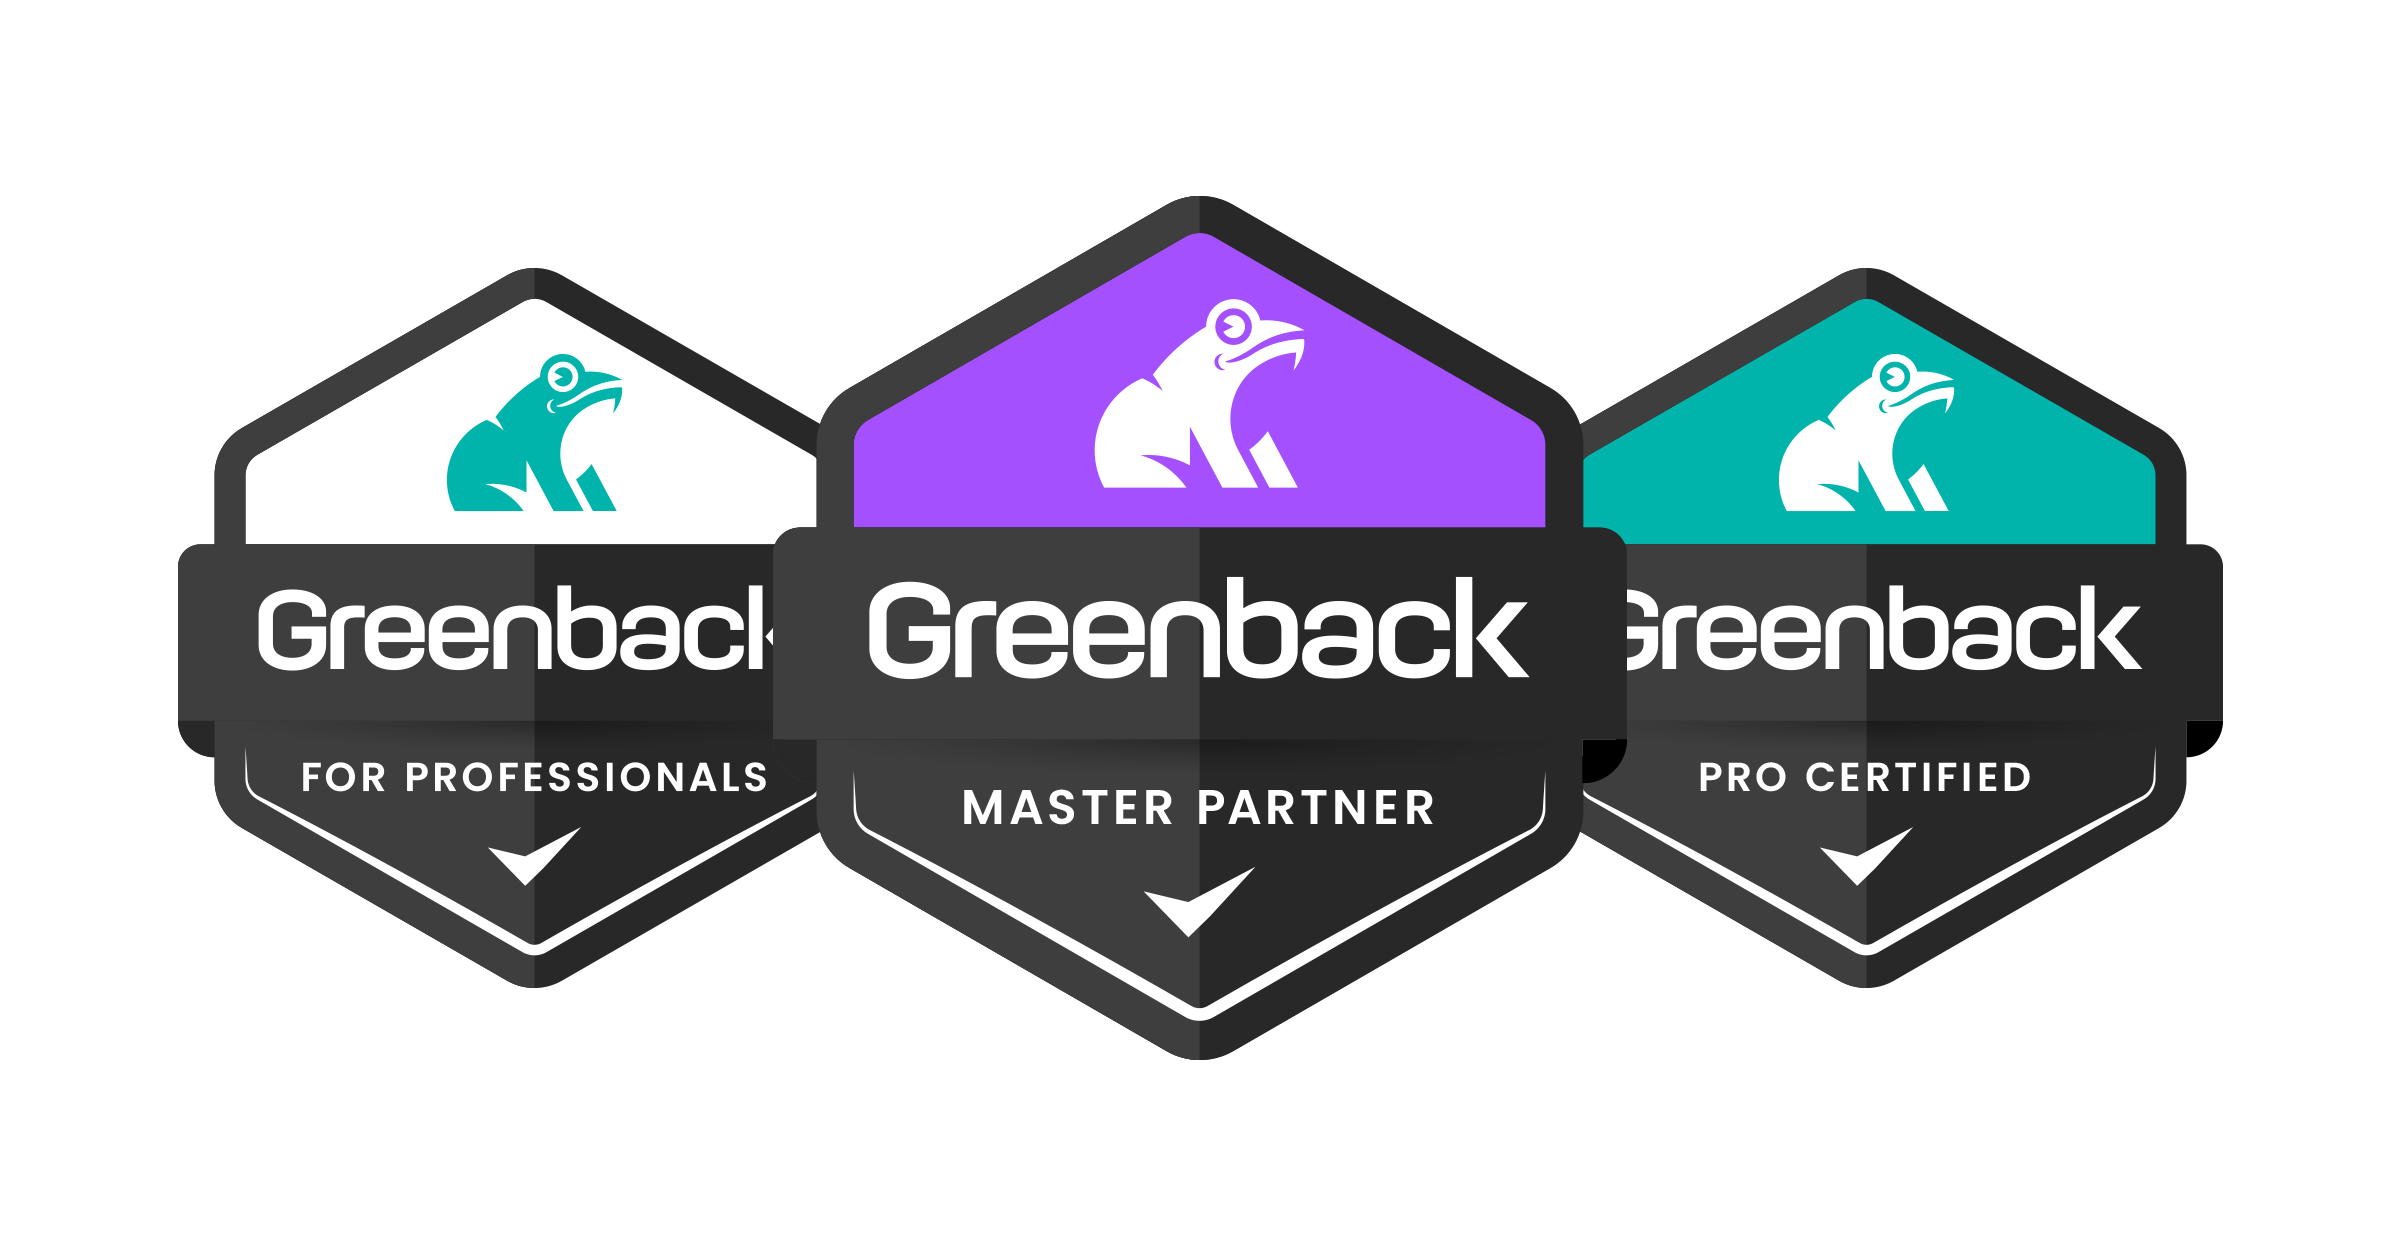 Introduction to Greenback for Pros